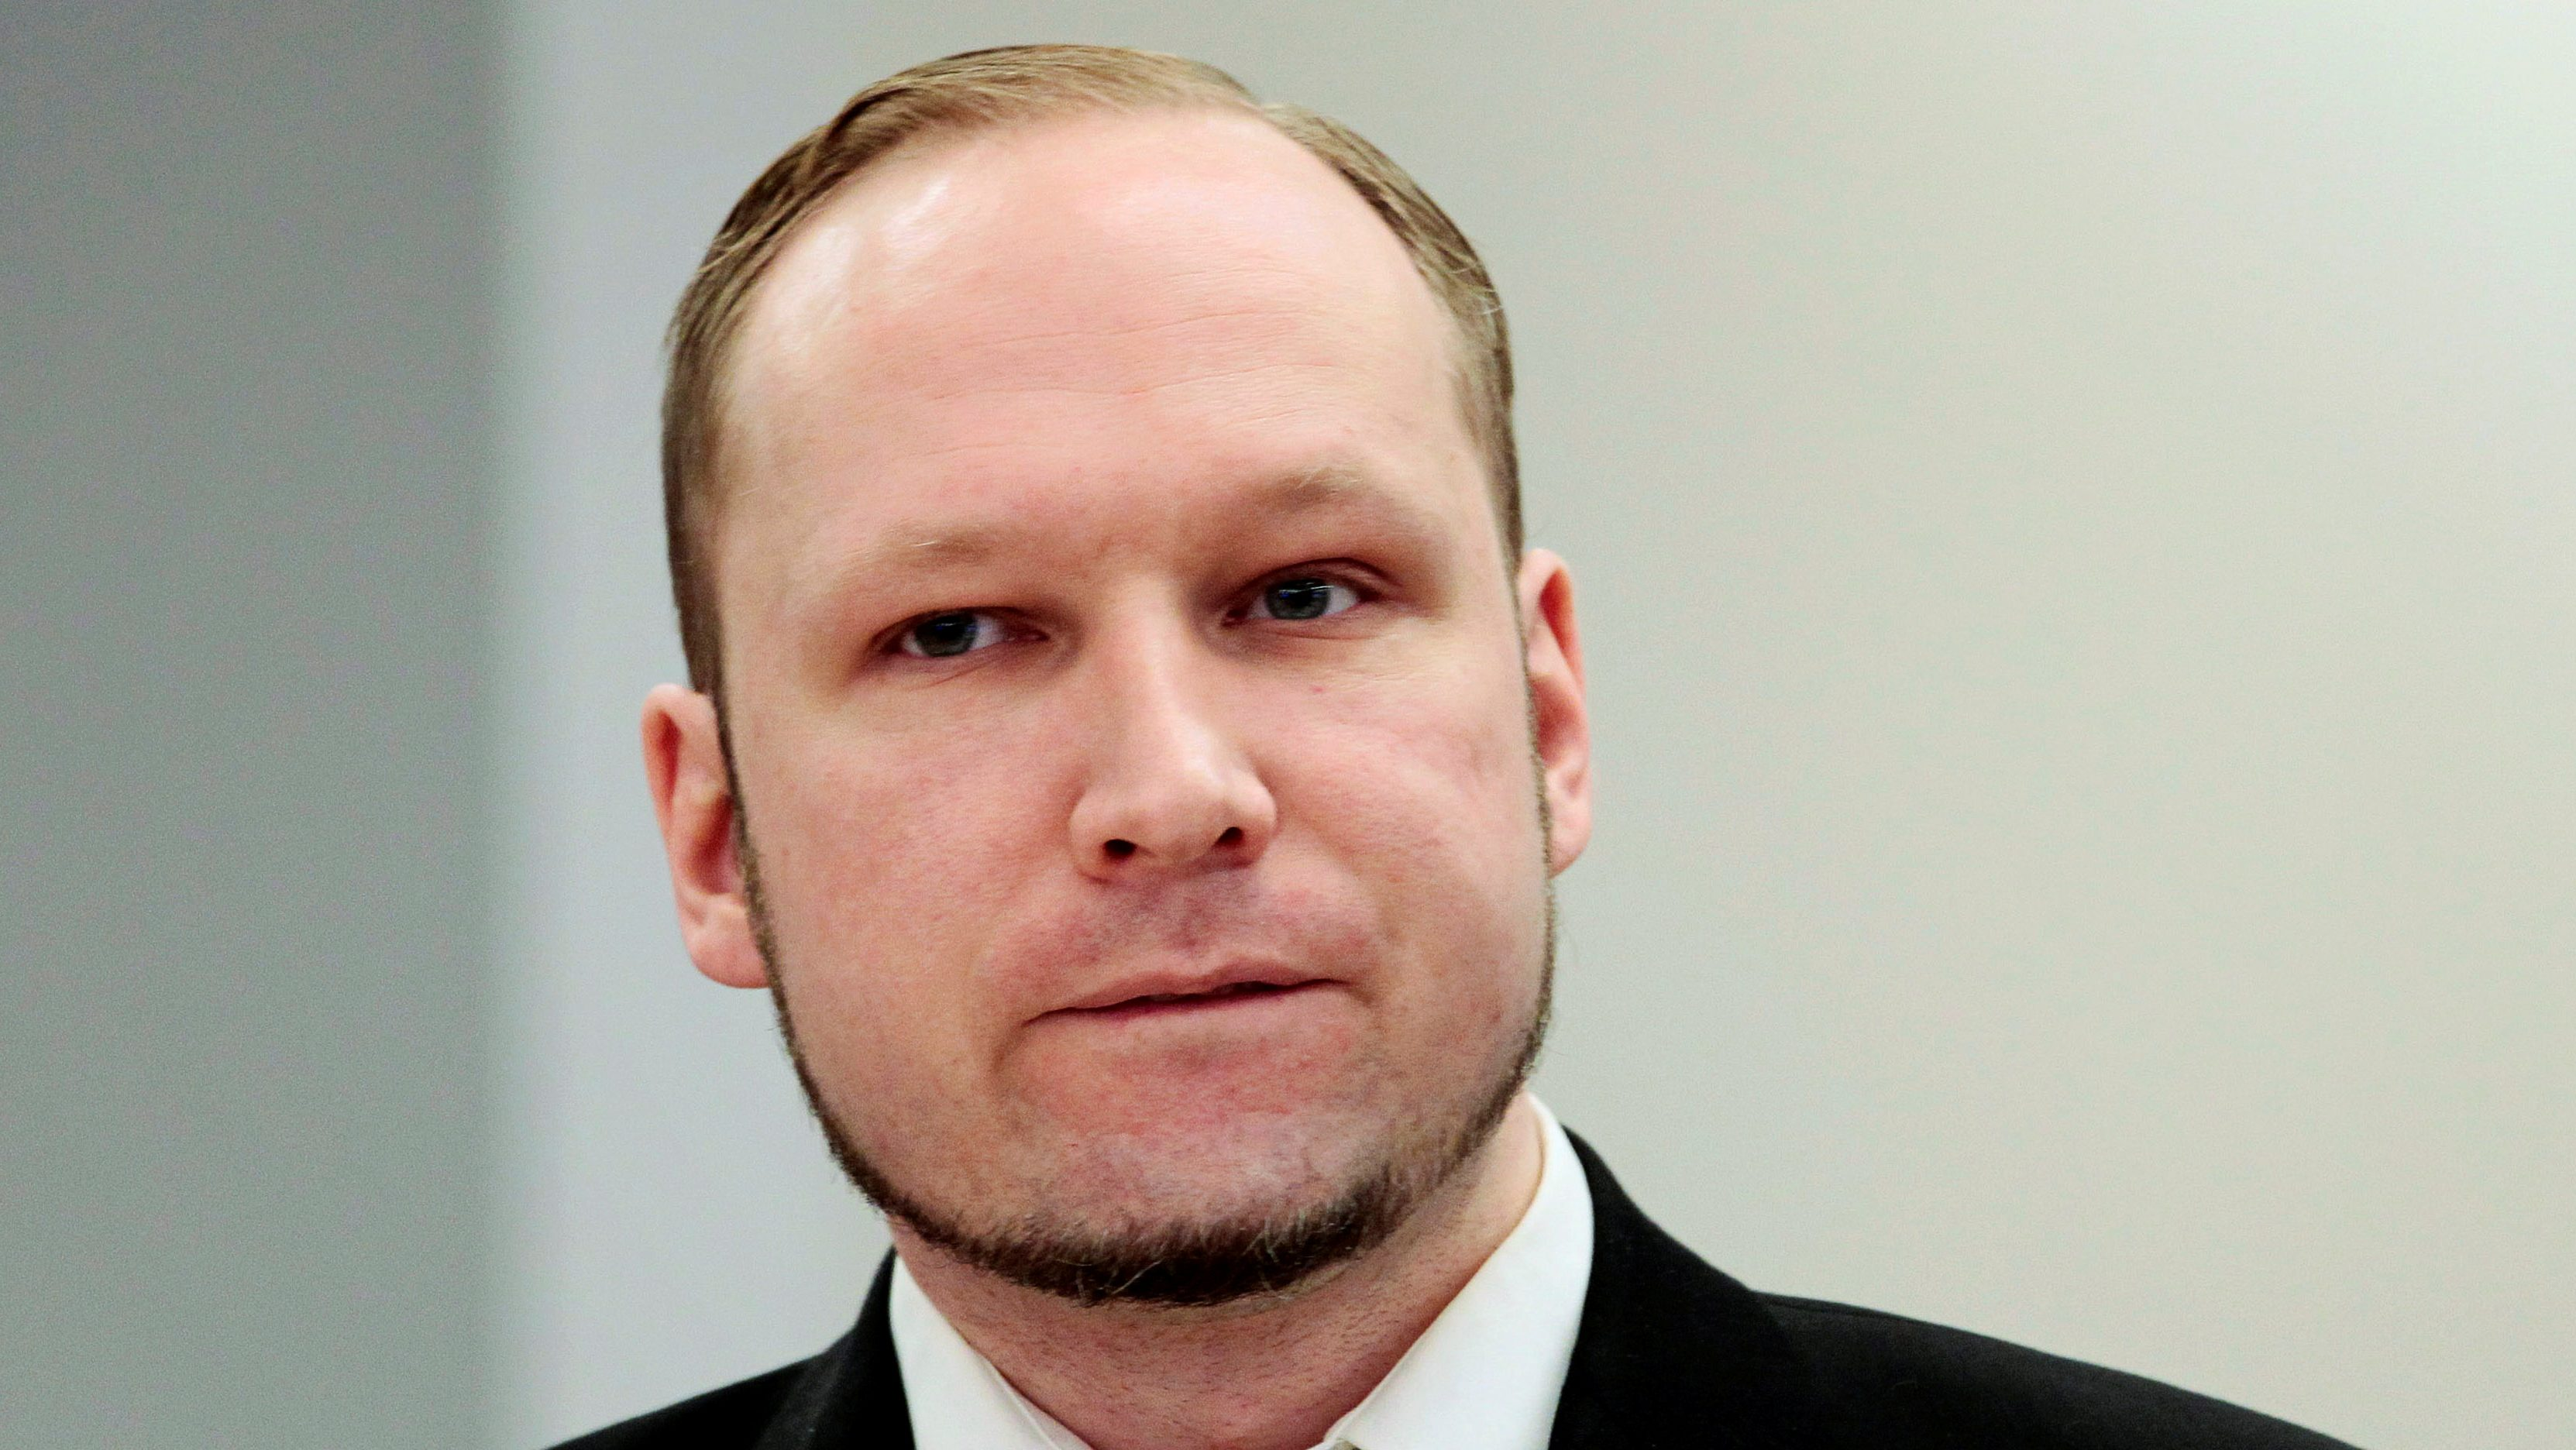 Anders Breivik at his trial